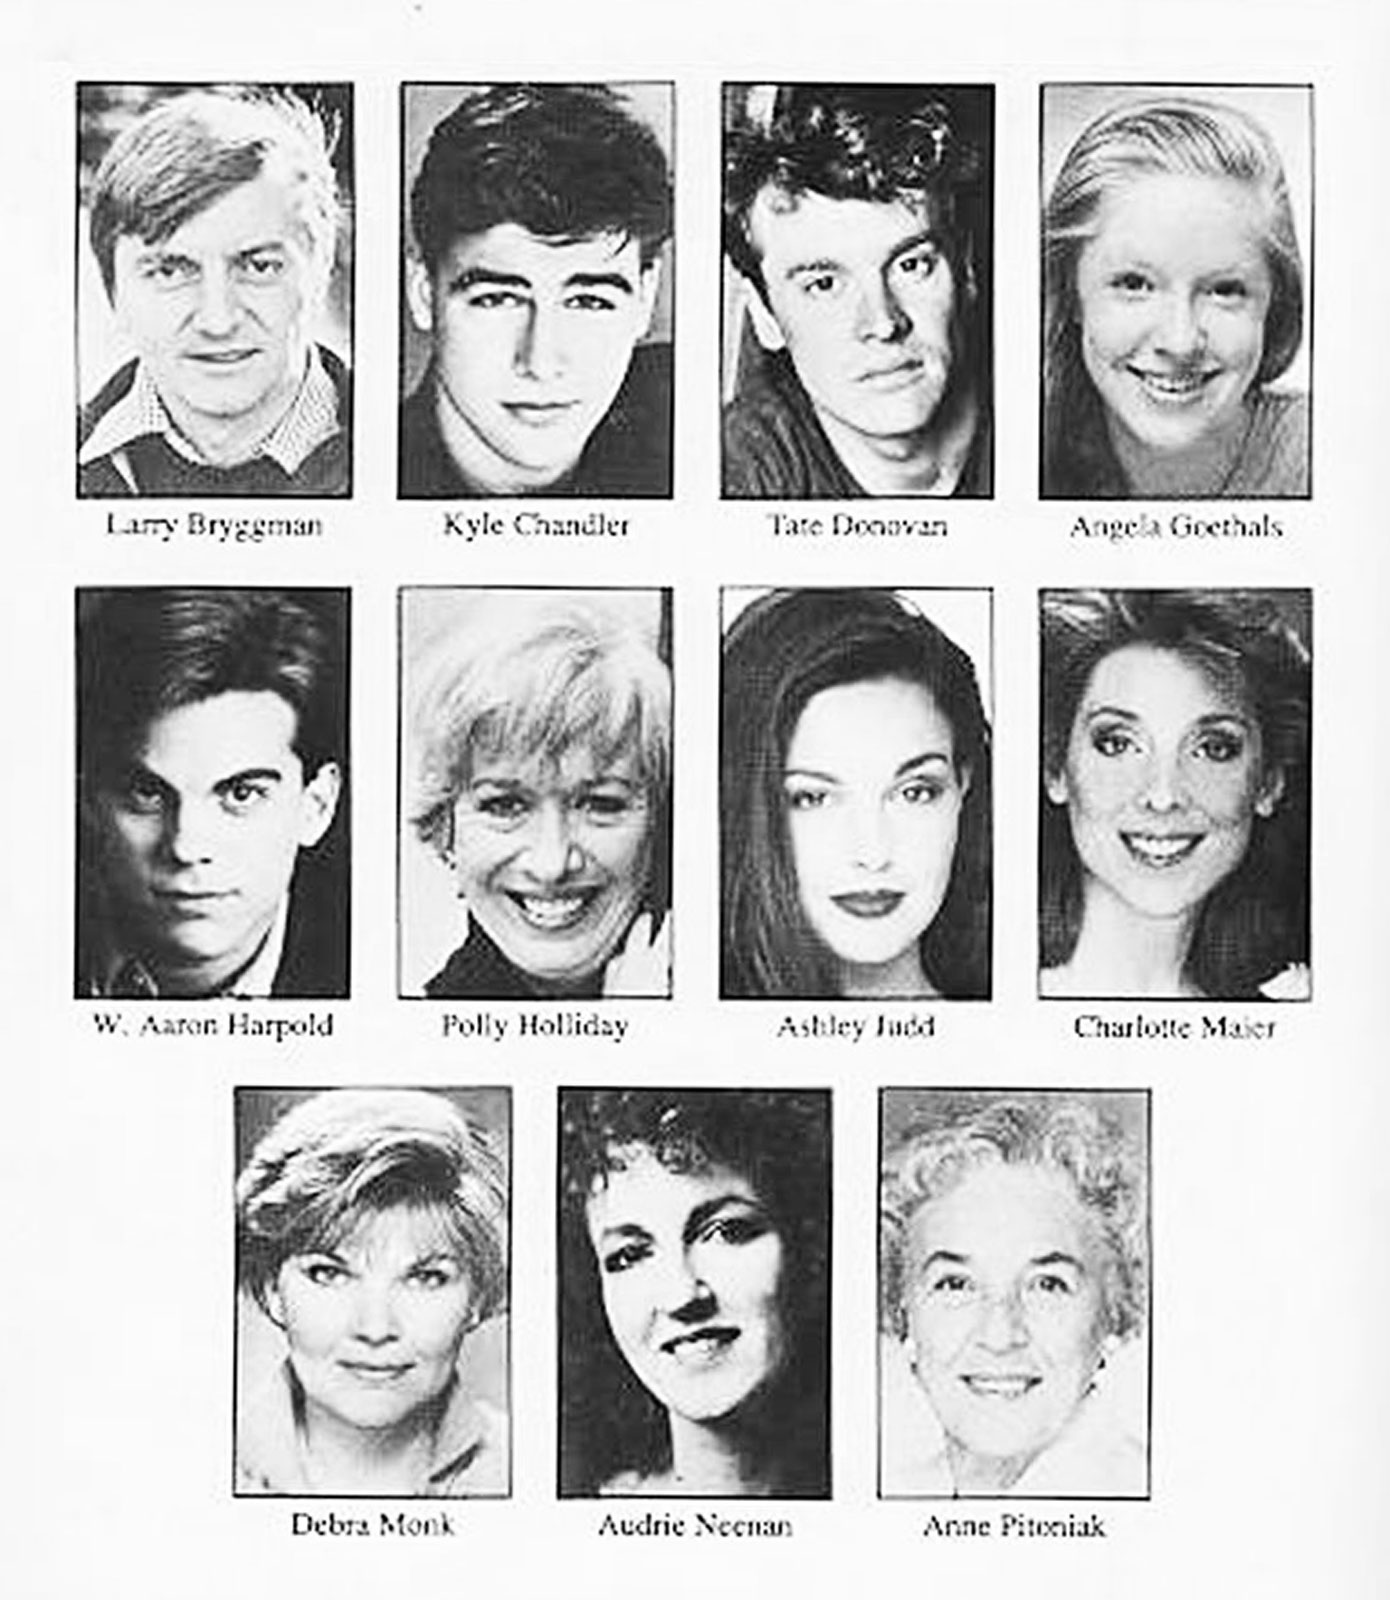 Black and white headshots of the Opening Night Cast of the Broadway Production in 1994.